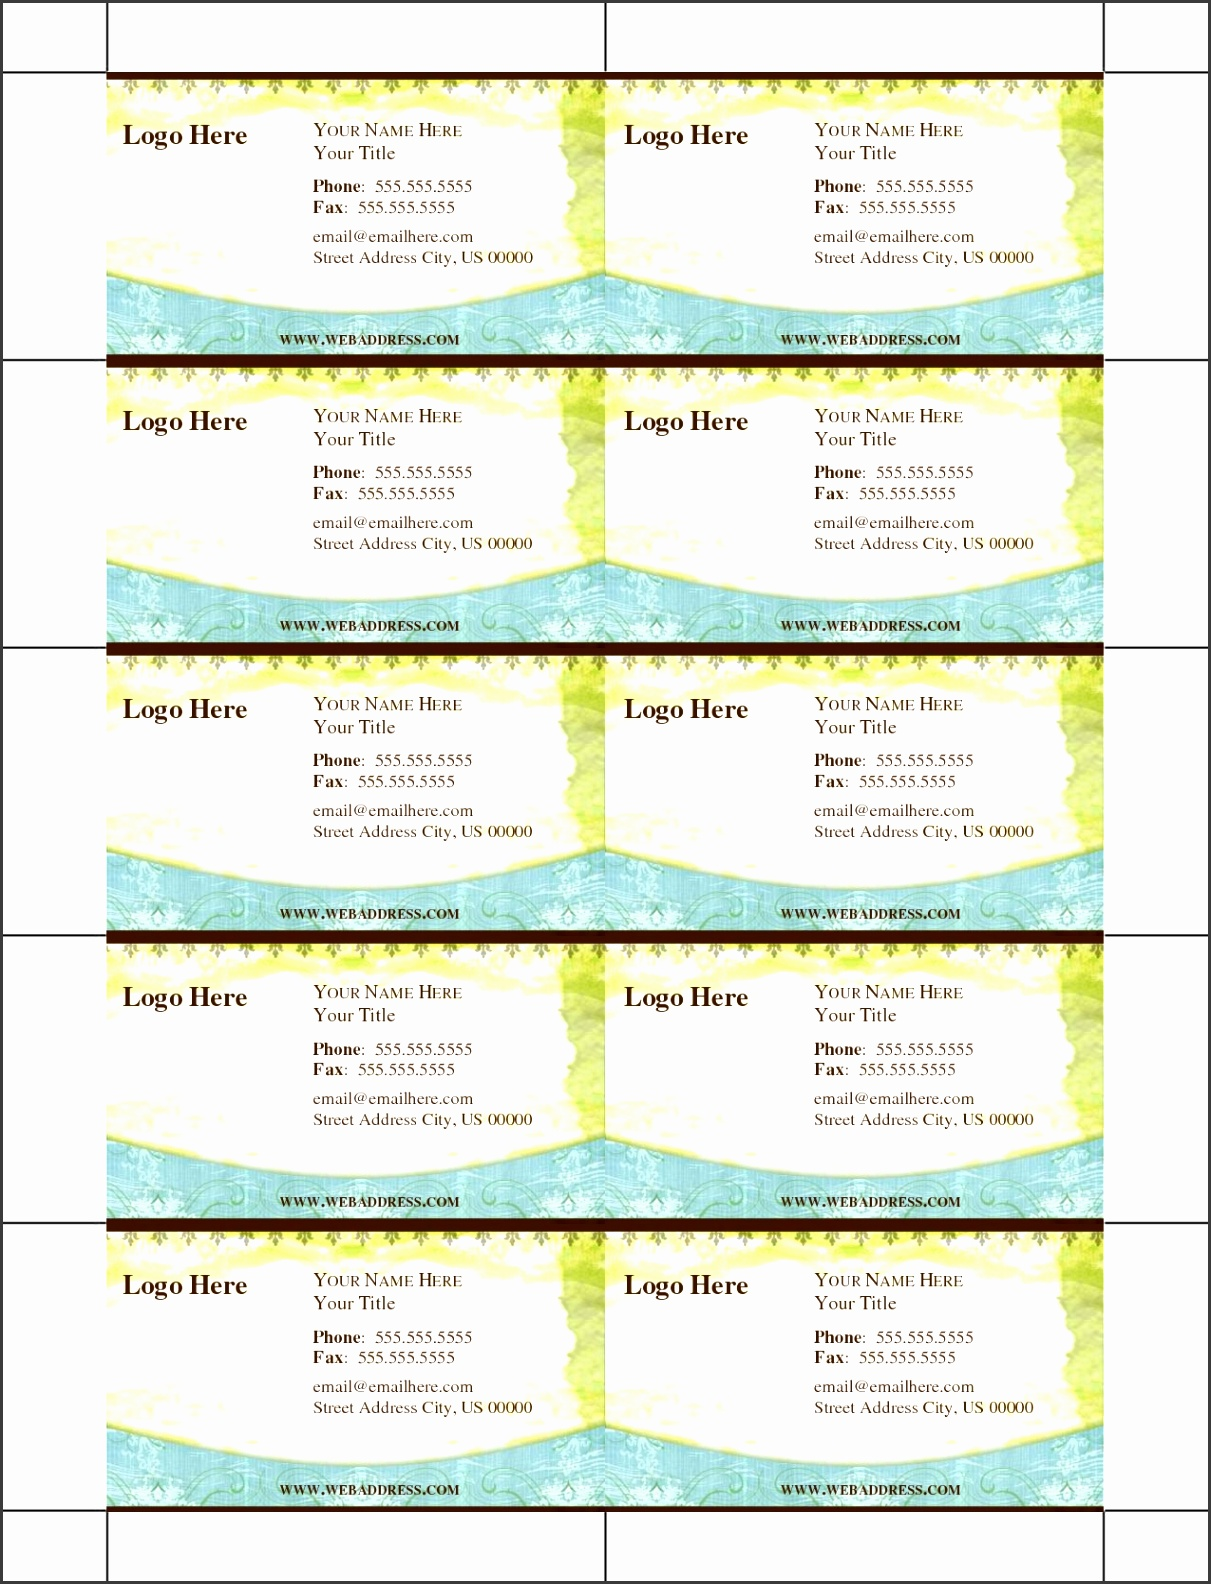 Free Blank Business Card Template Word Sweetbook pertaining to Free Printable Business Card Templates 9410